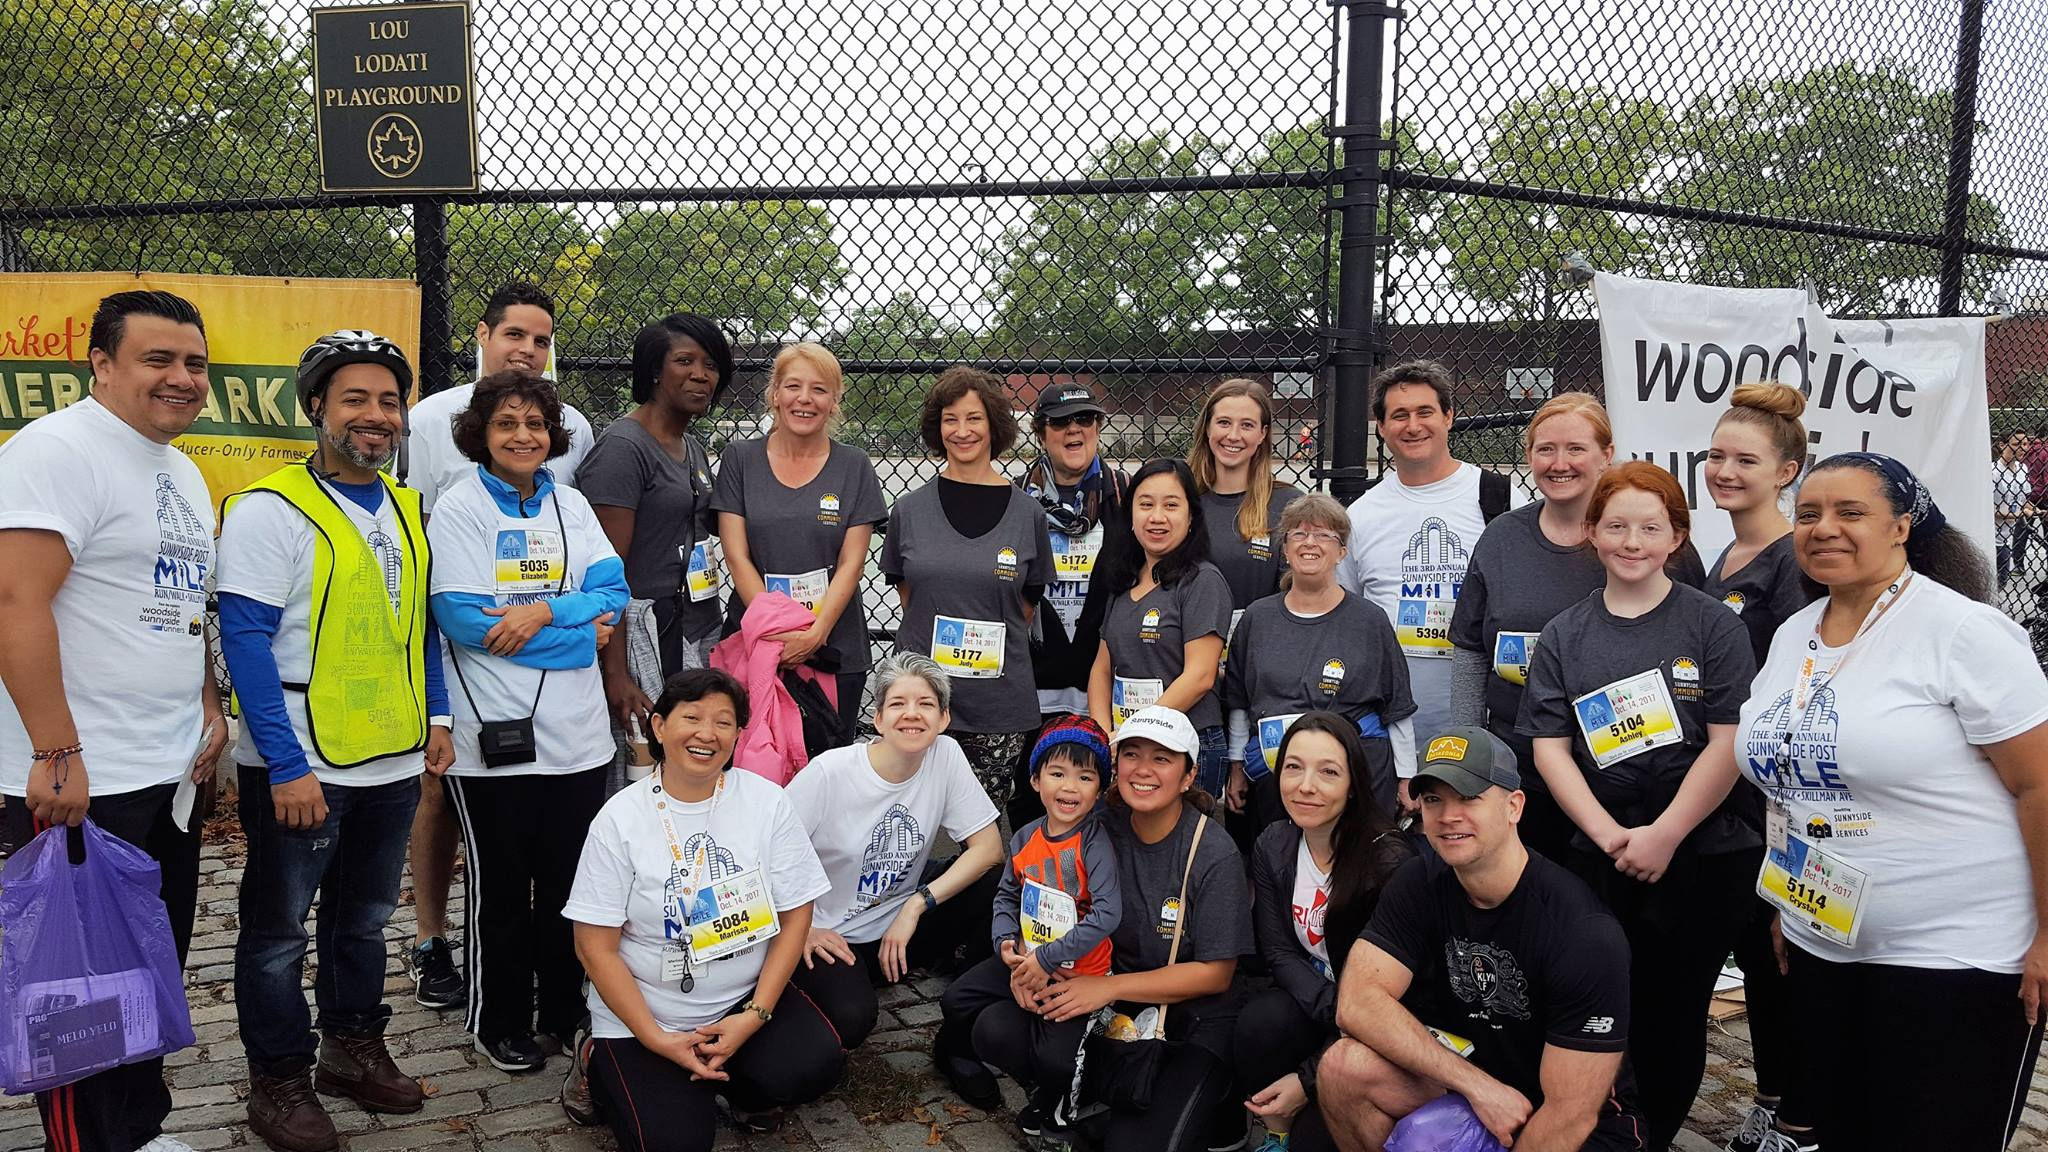 Sunnyside Community Services staff, board members, volunteers, family, and friends at the 3rd Annual Sunnyside Post Mile Run